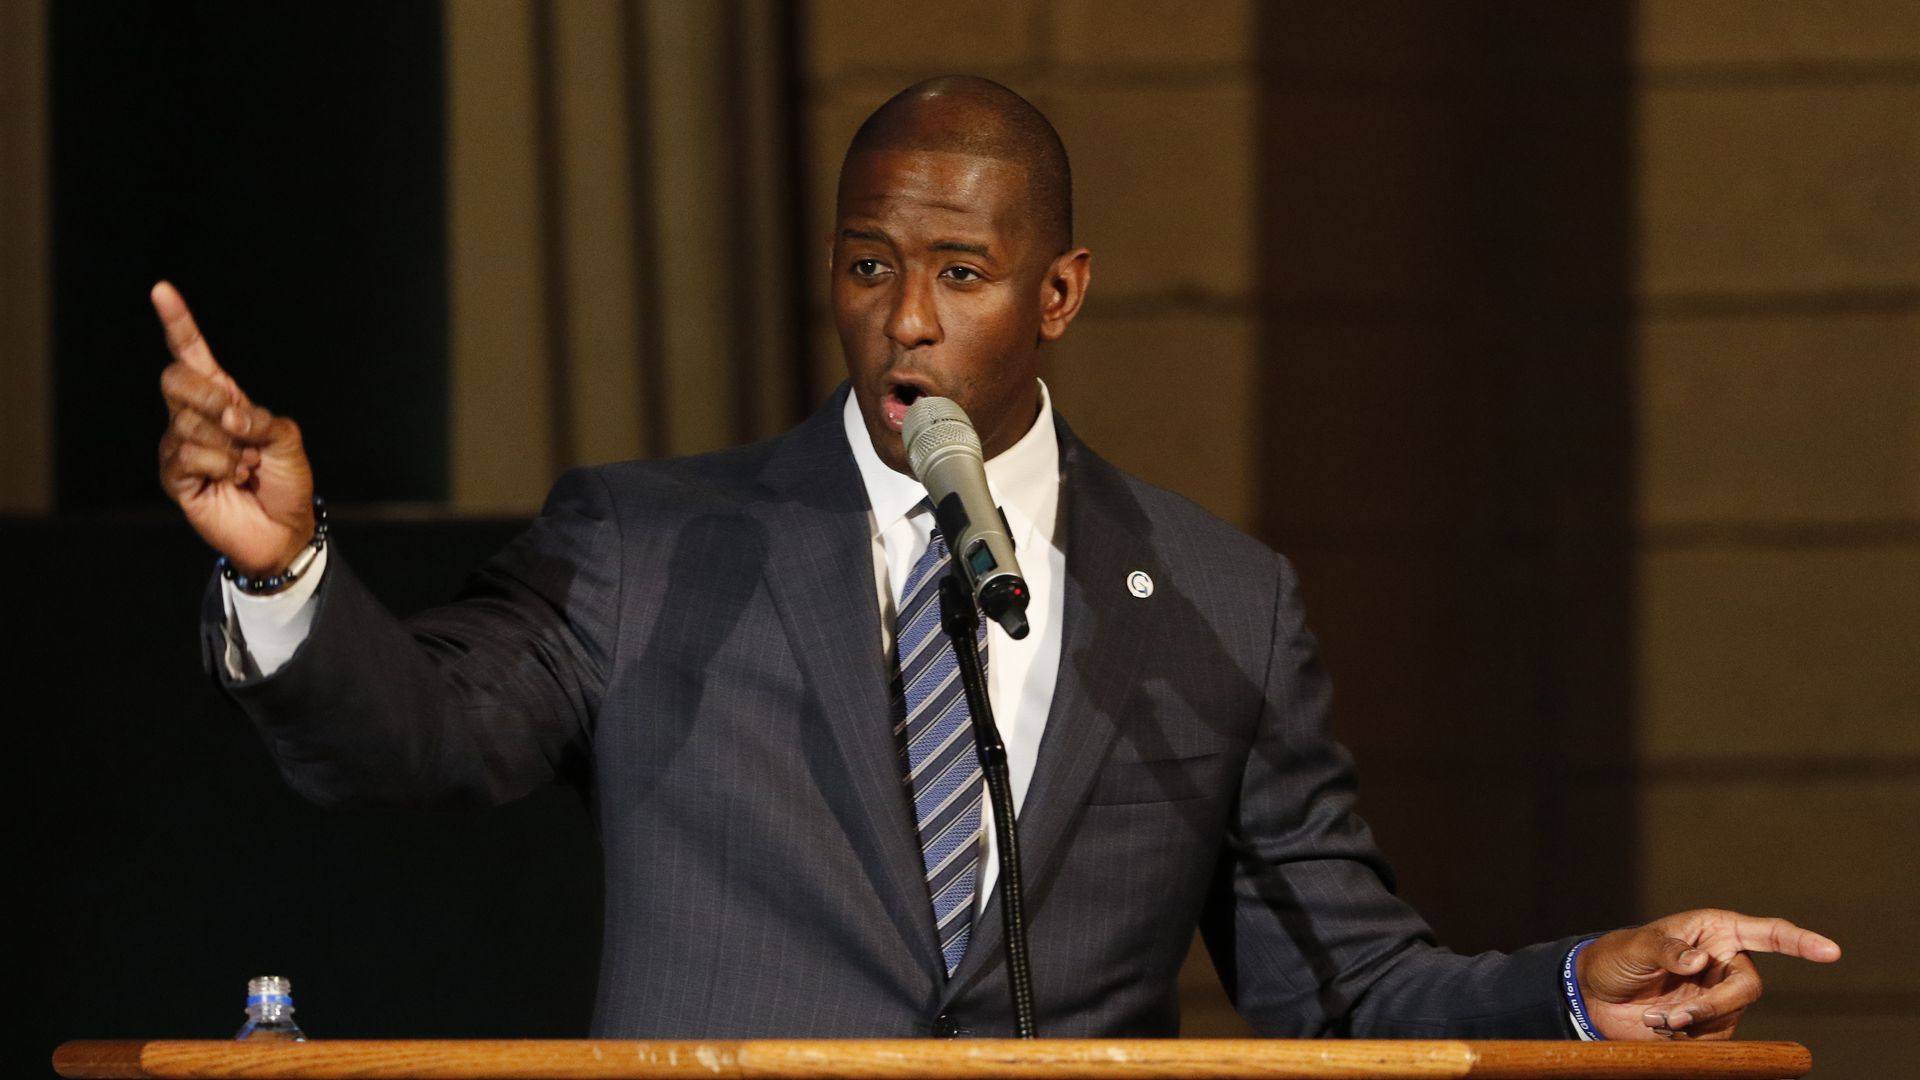 Andrew Gillum speaking